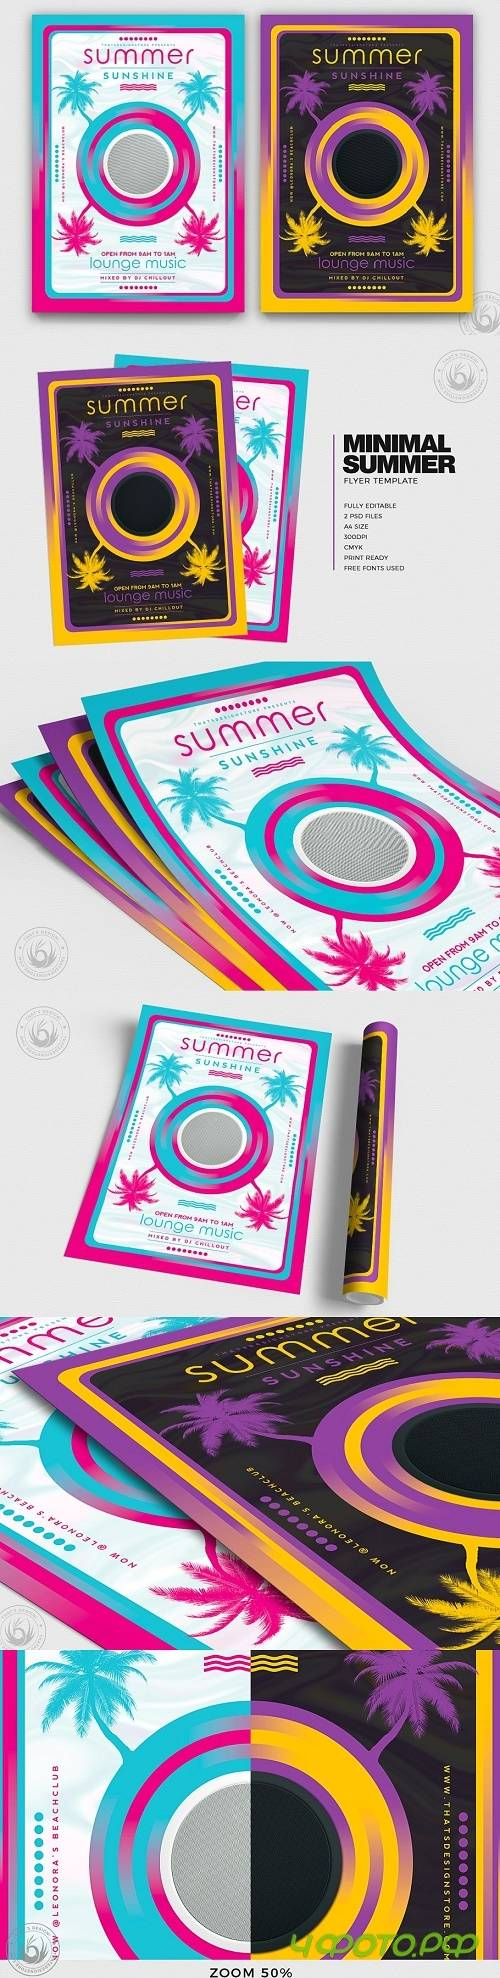 Minimal Summer Flyer Template V3 3816786